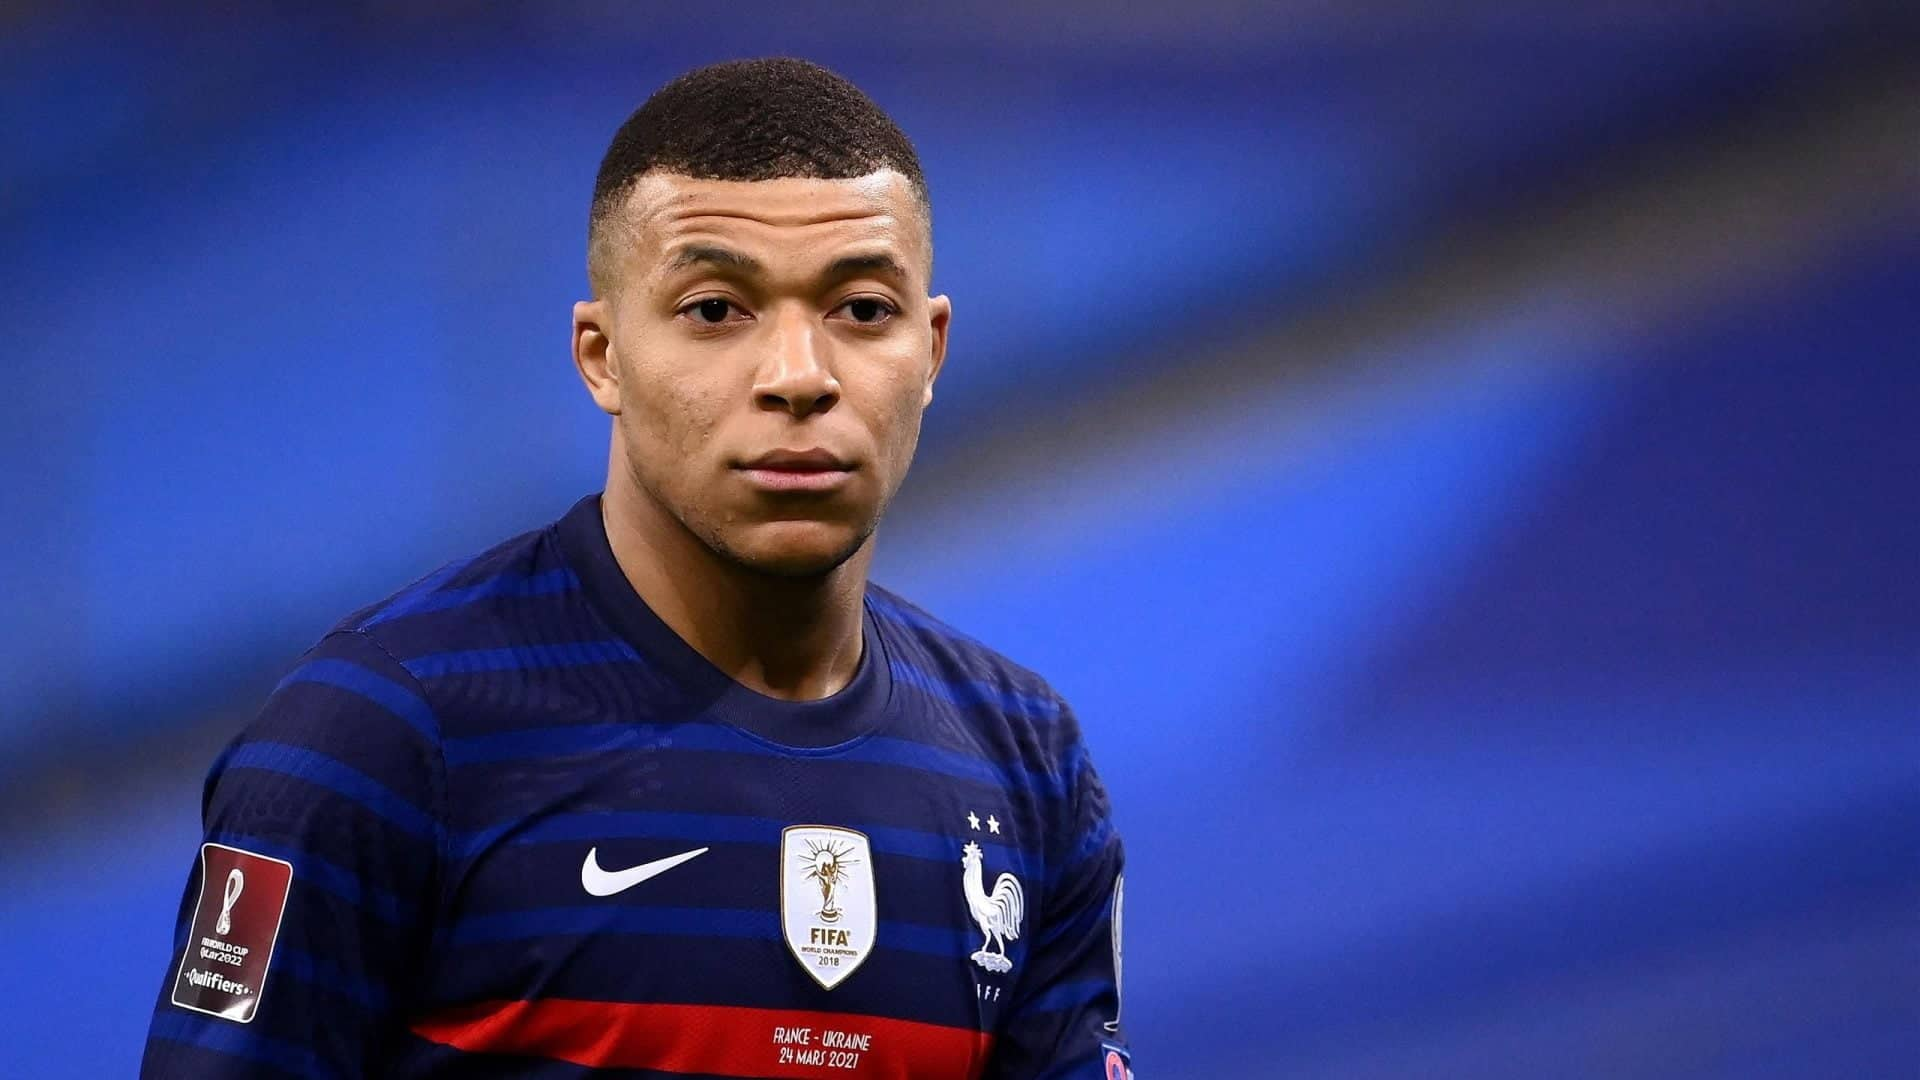 Madrid looking forward to making the move for Mbappe